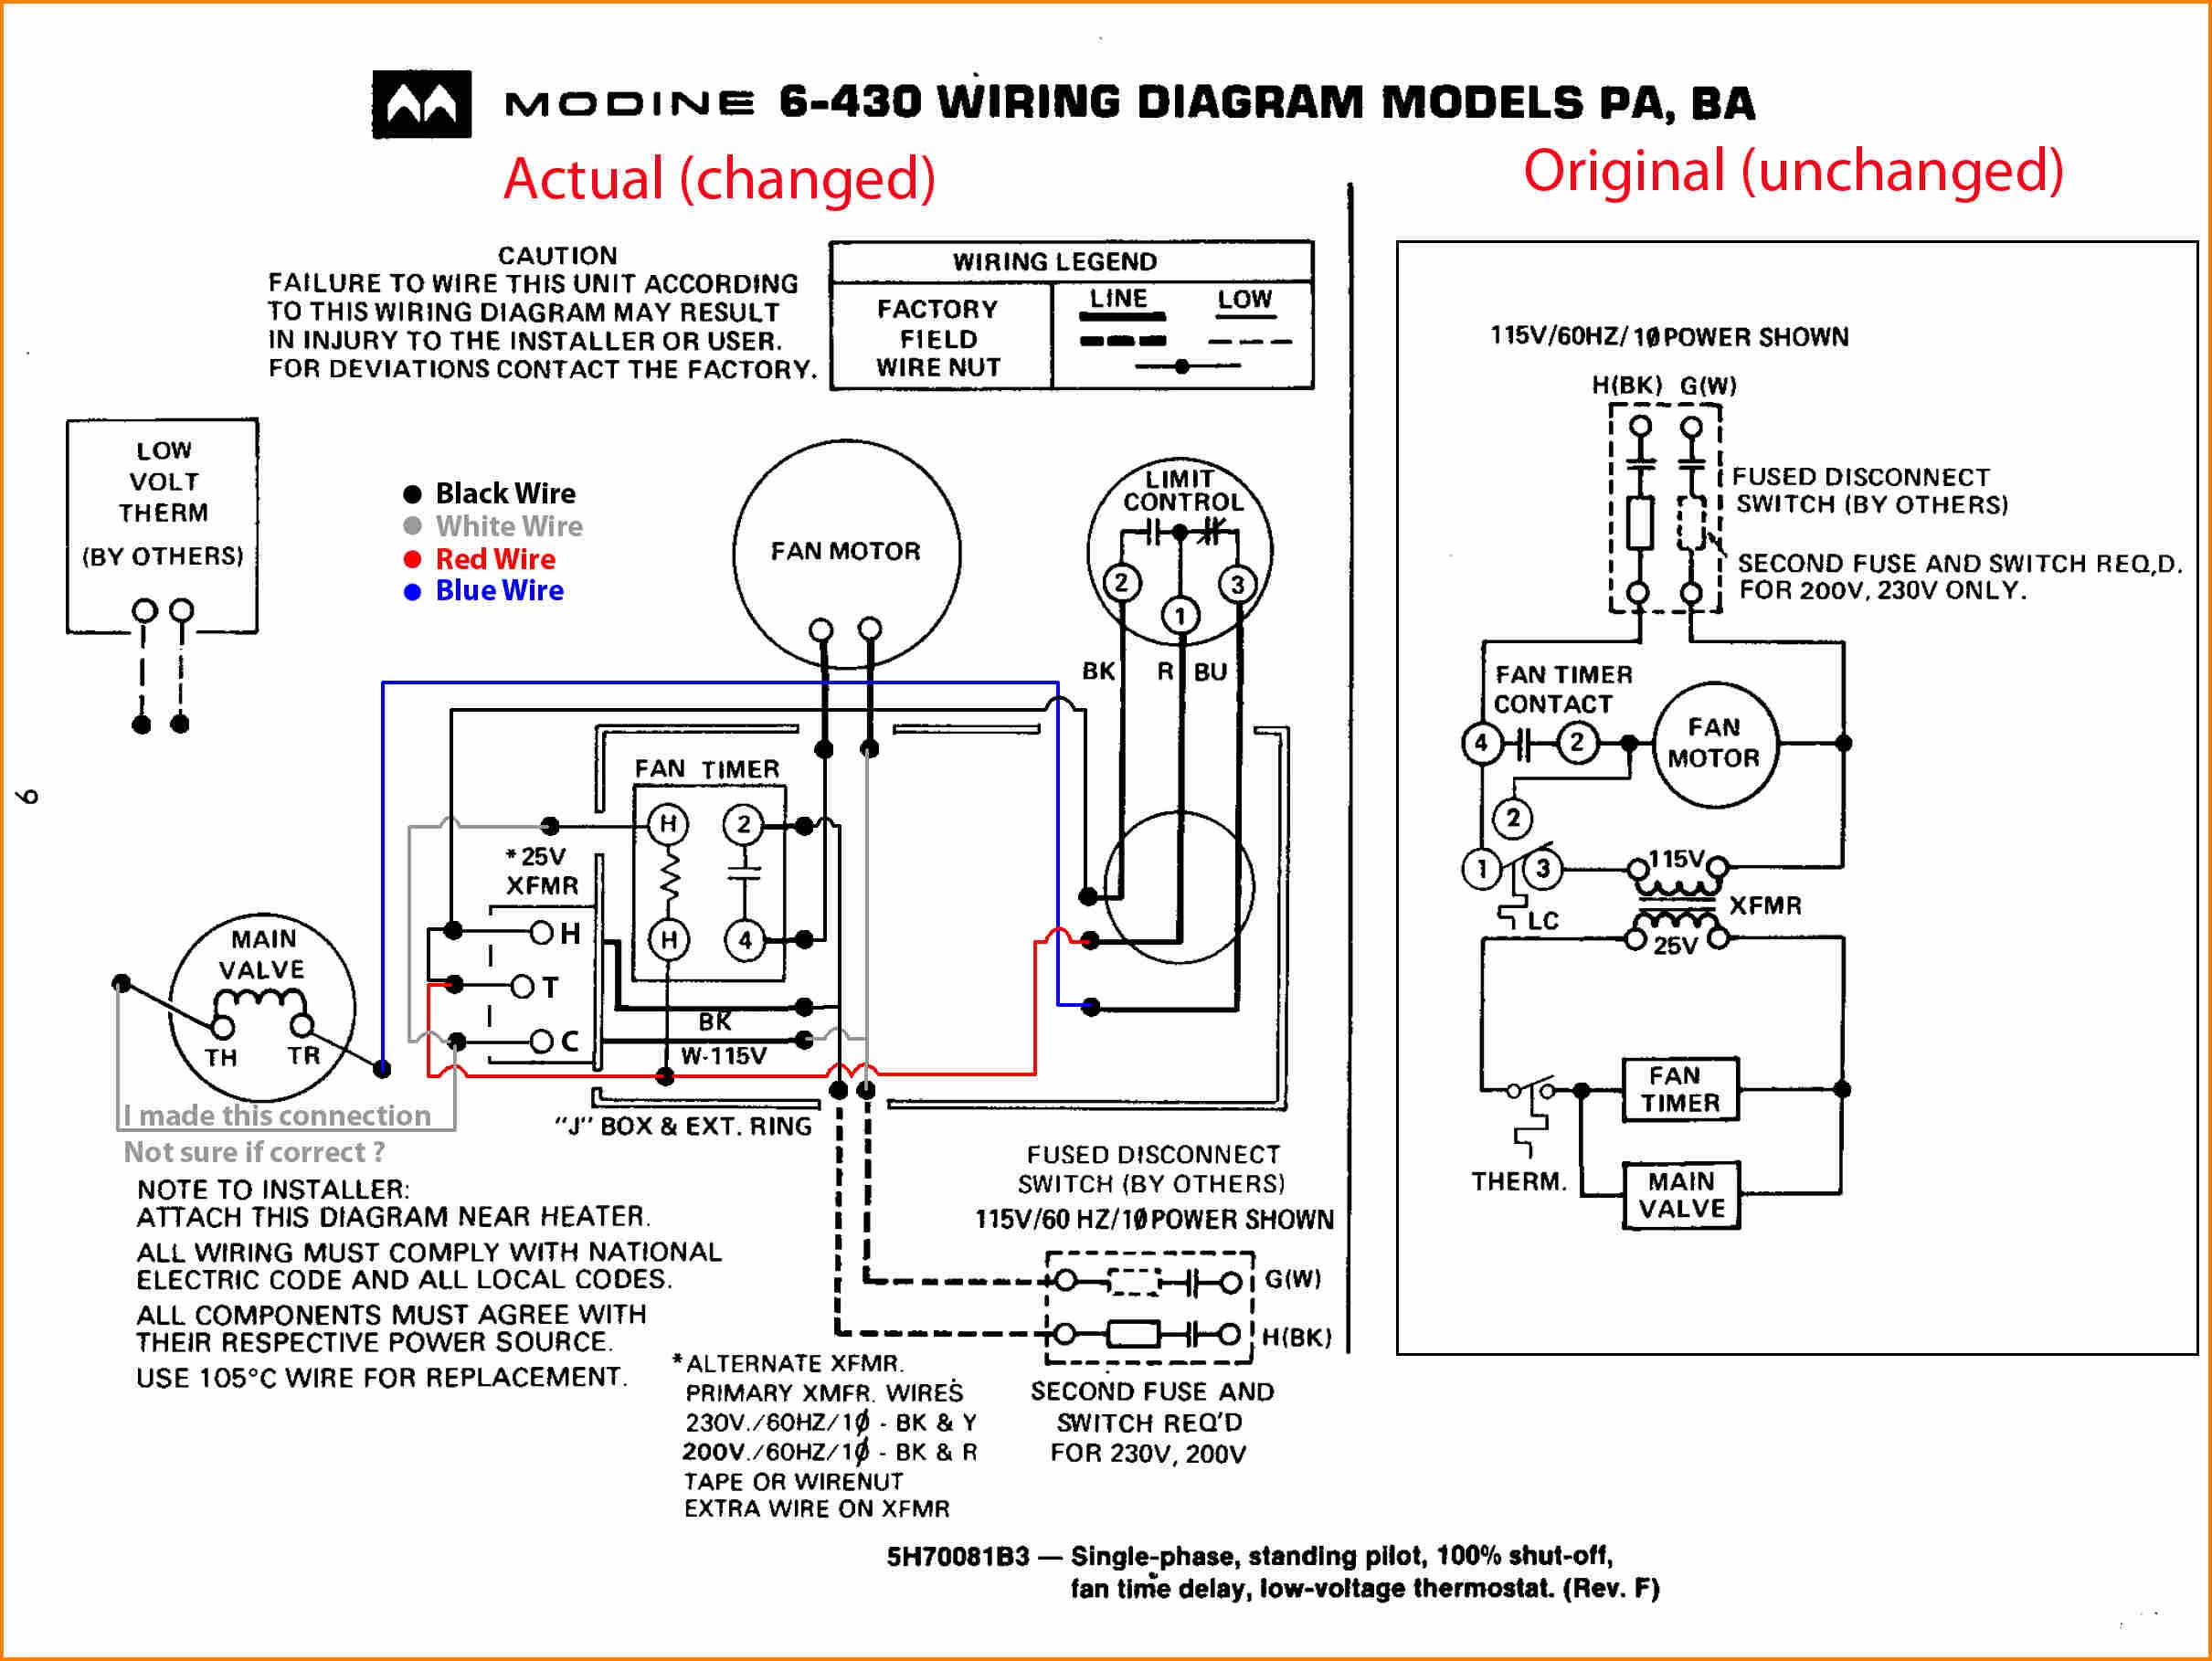 Fasco D727 Wiring Diagram - 5.20.tierarztpraxis-ruffy.de • on electronics circuits, thermostat circuits, wire circuits, motor circuits, electrical circuits, building circuits, three circuits, power circuits, control circuits, computer circuits, audio circuits, inverter circuits, battery circuits, coil circuits, lighting circuits, relay circuits,